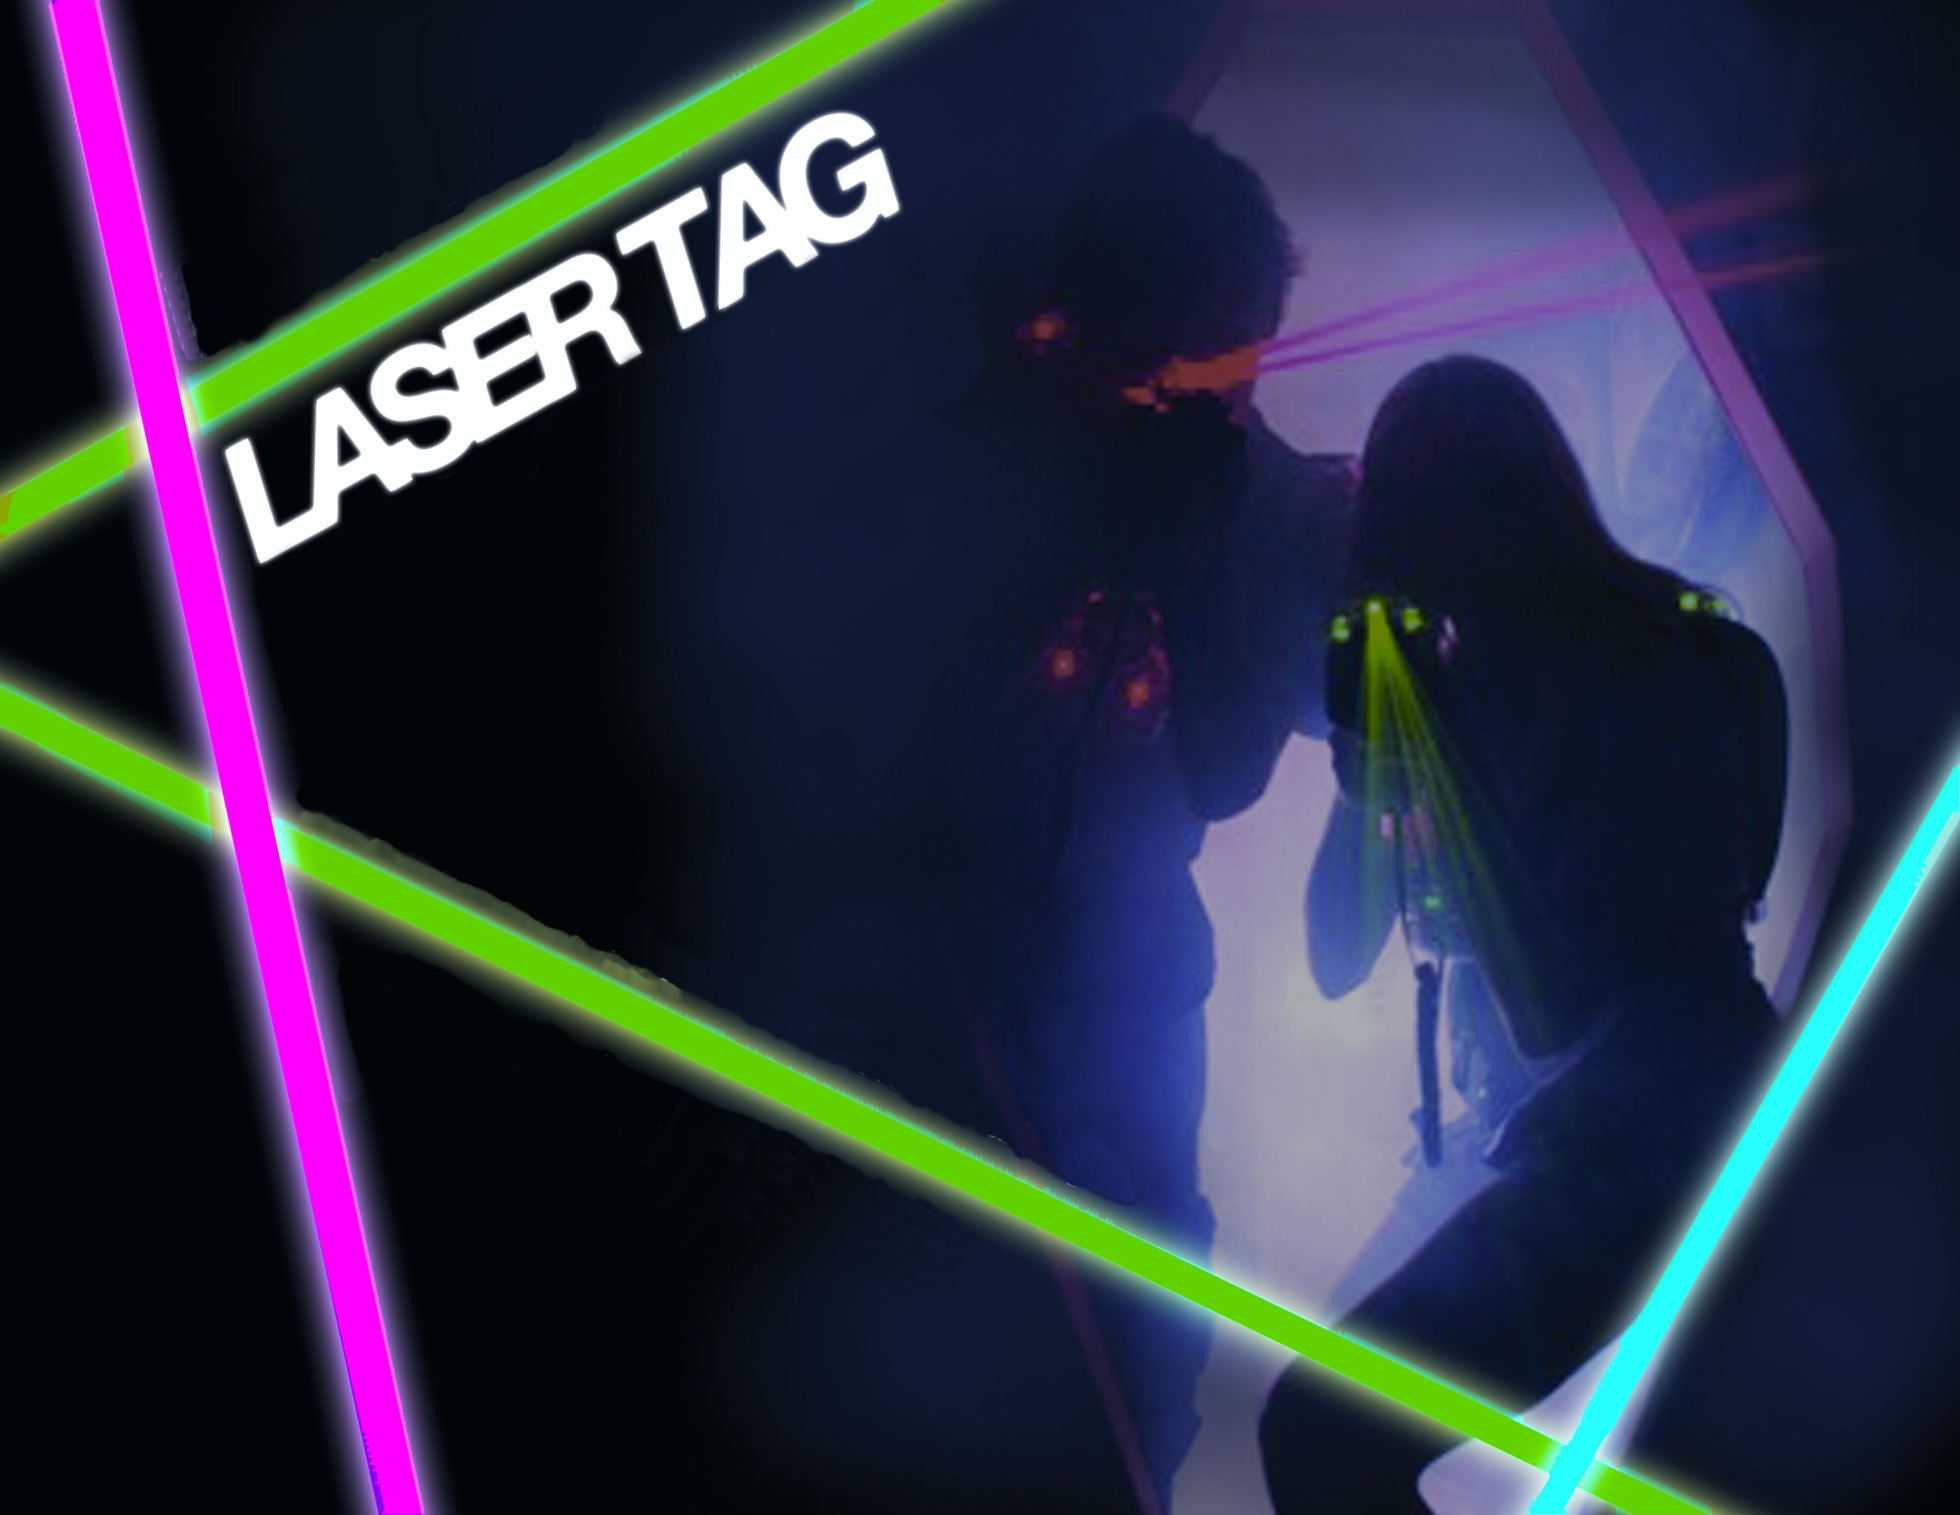 Laser Tag Party Invitation for perfect invitation example